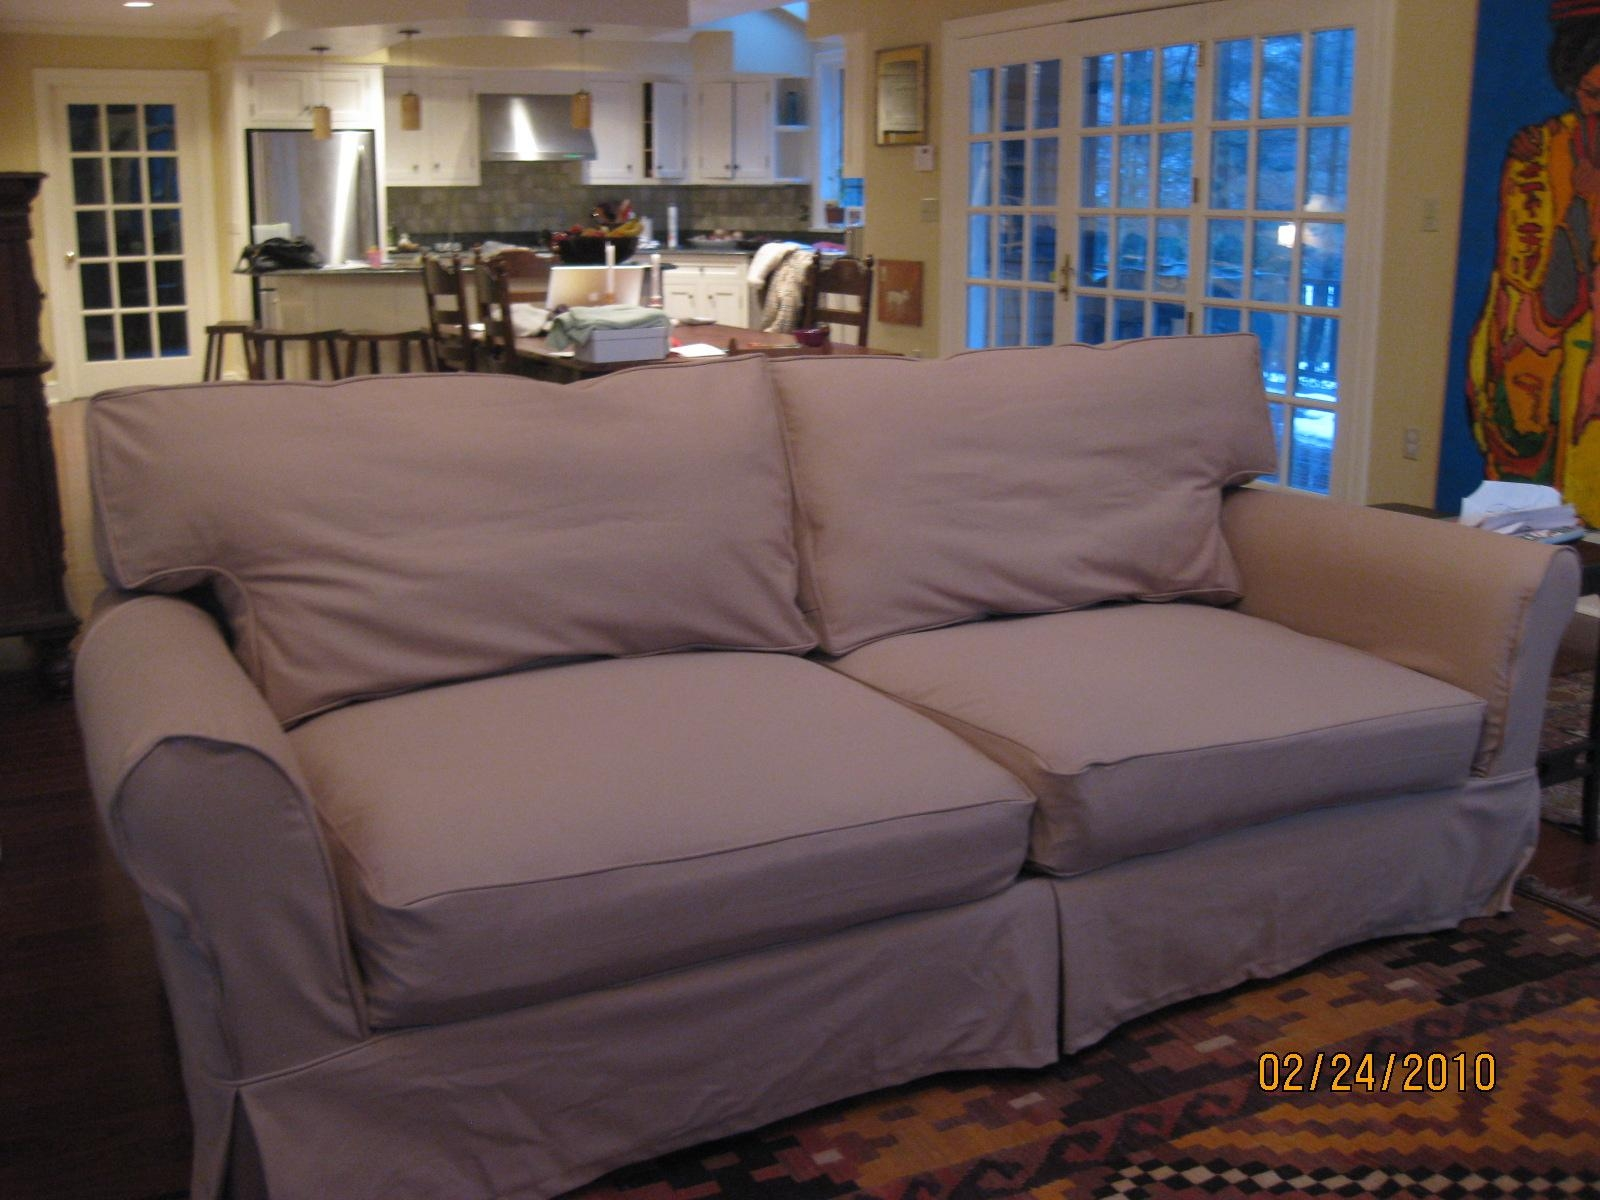 Replacement Slipcover Outlet Replacement Slipcovers For Famous Inside Mitchell Gold Sofa Slipcovers (View 8 of 20)